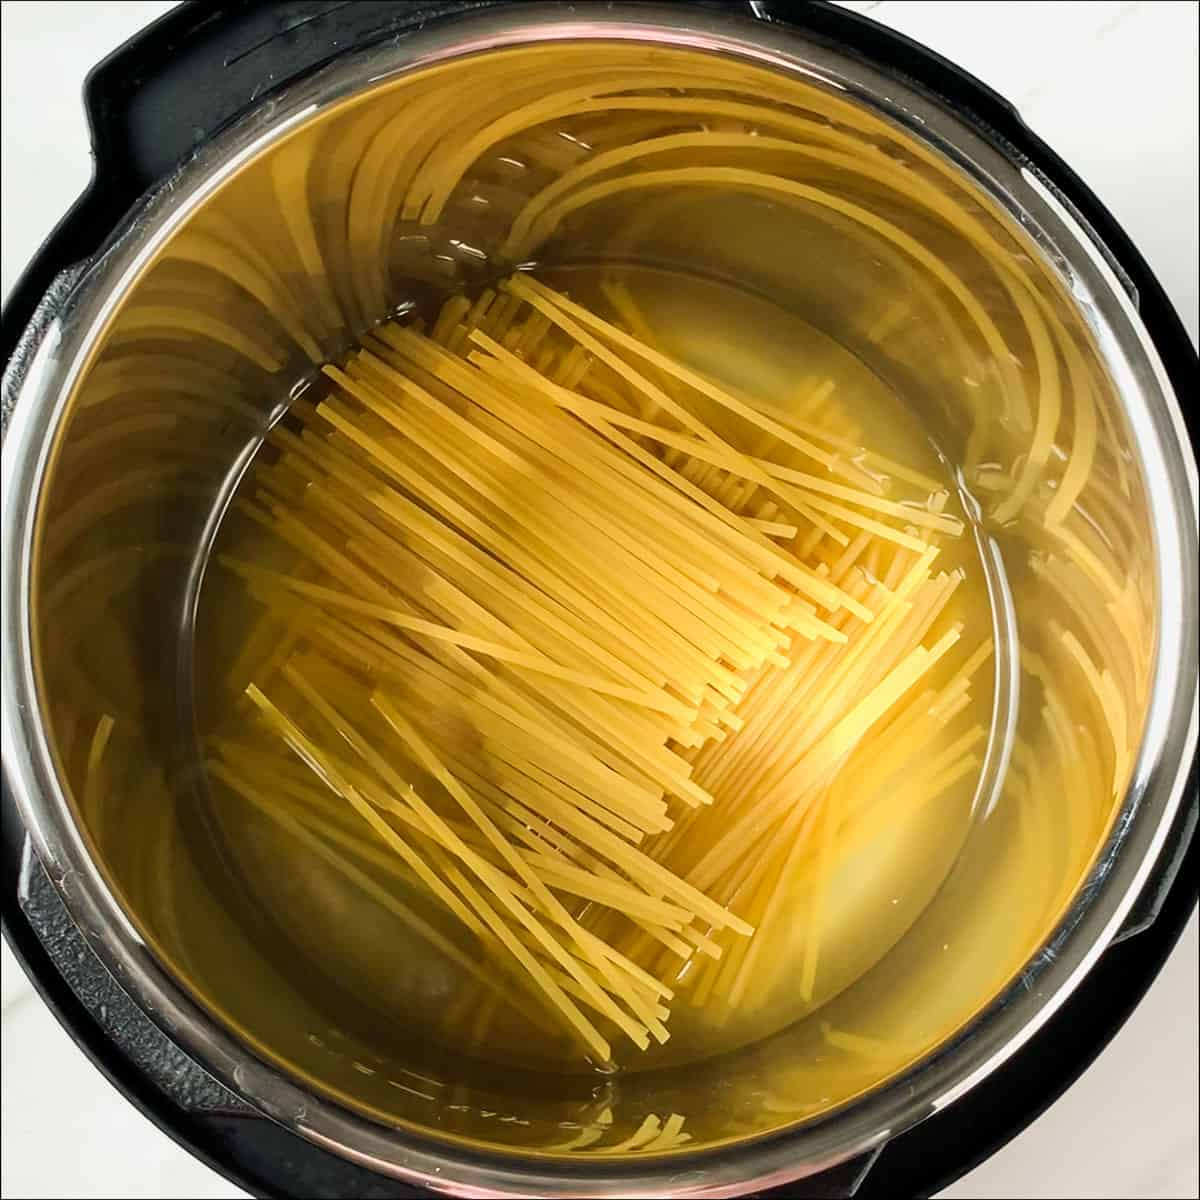 chicken broth and linguine noodles layered in the instant pot